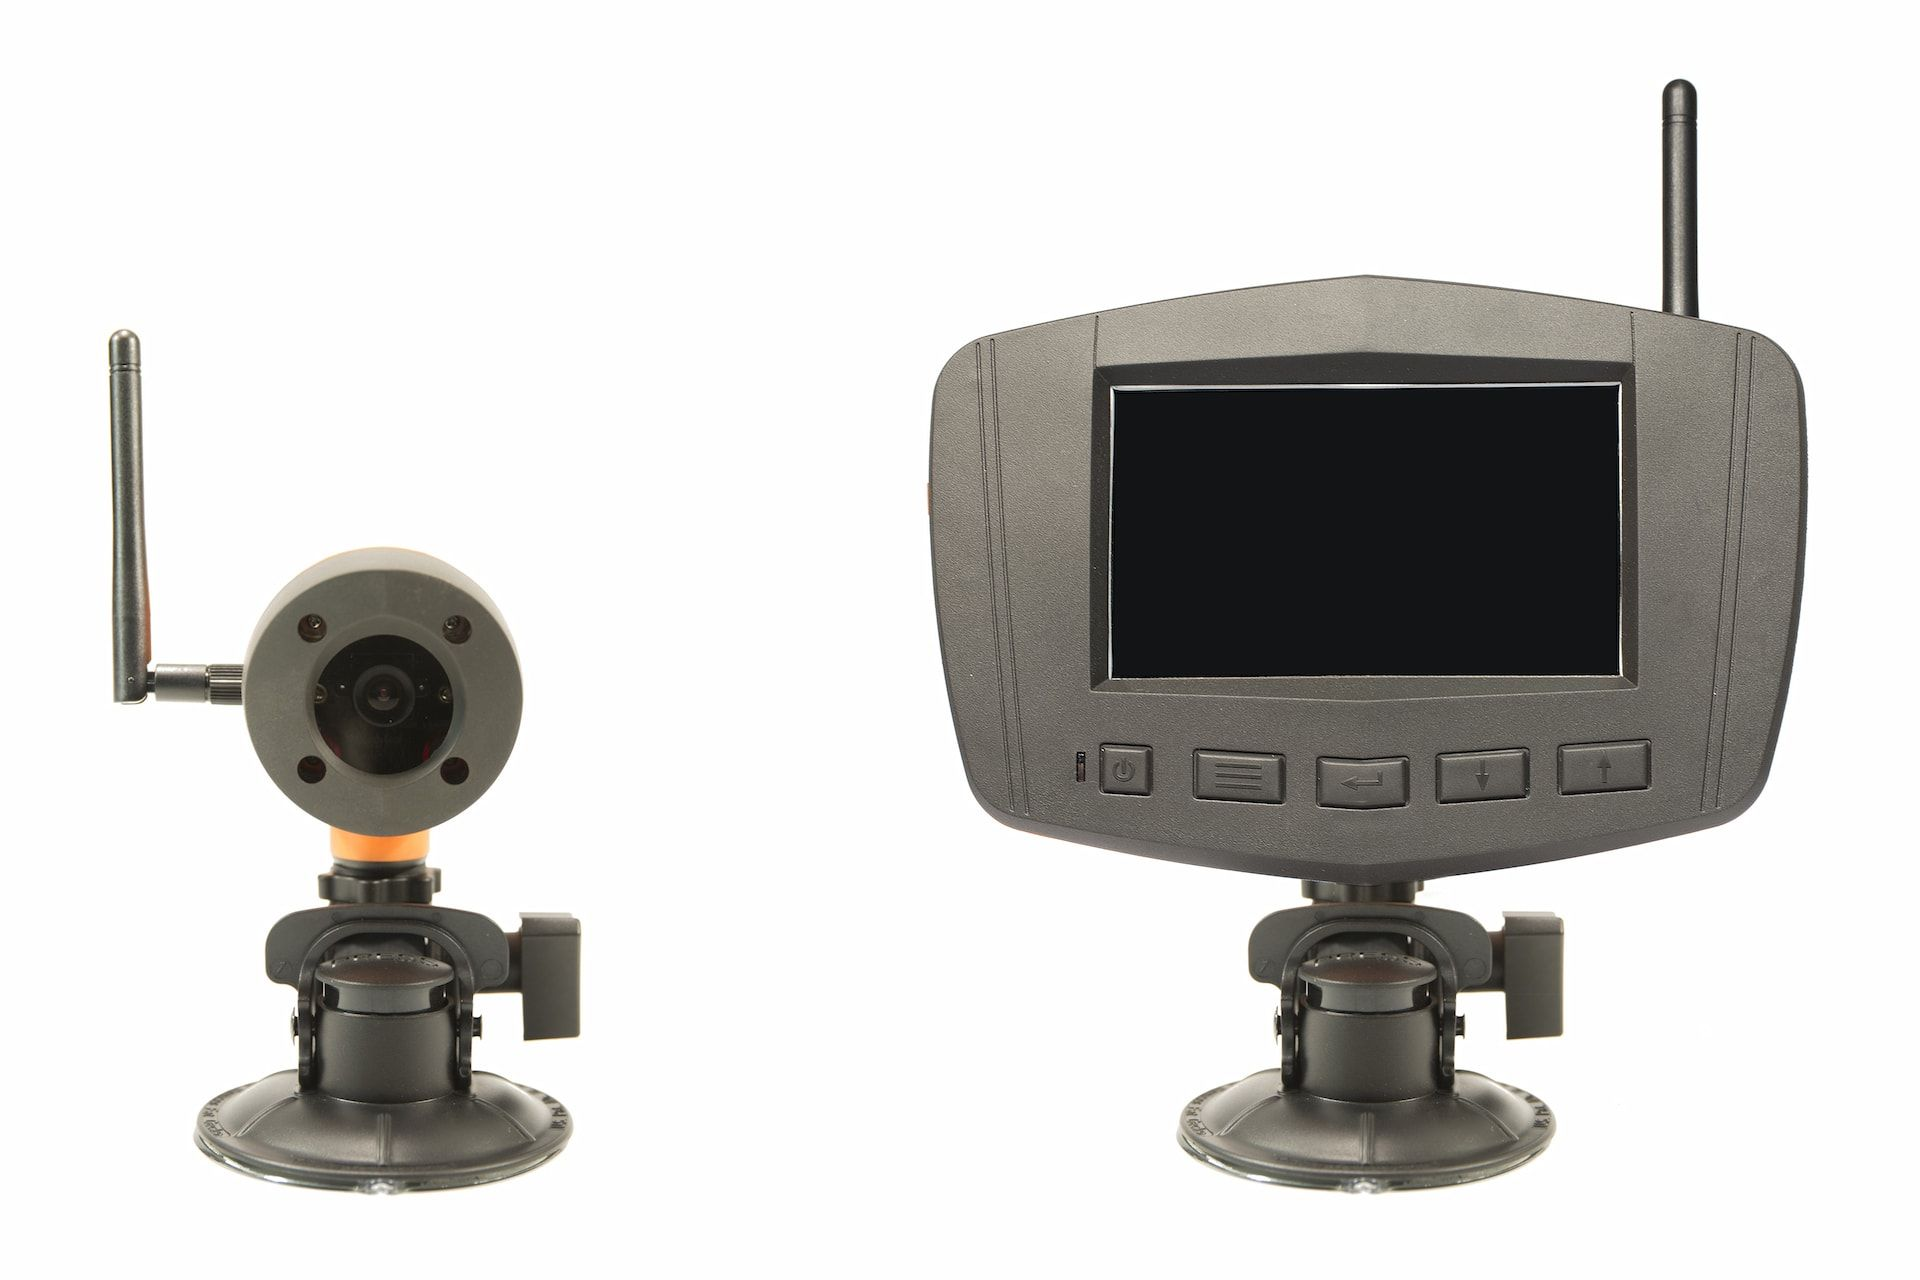 JVS-001 Hyndsight Video Monitor 5 Inch Height x 7.3 Inch Width x